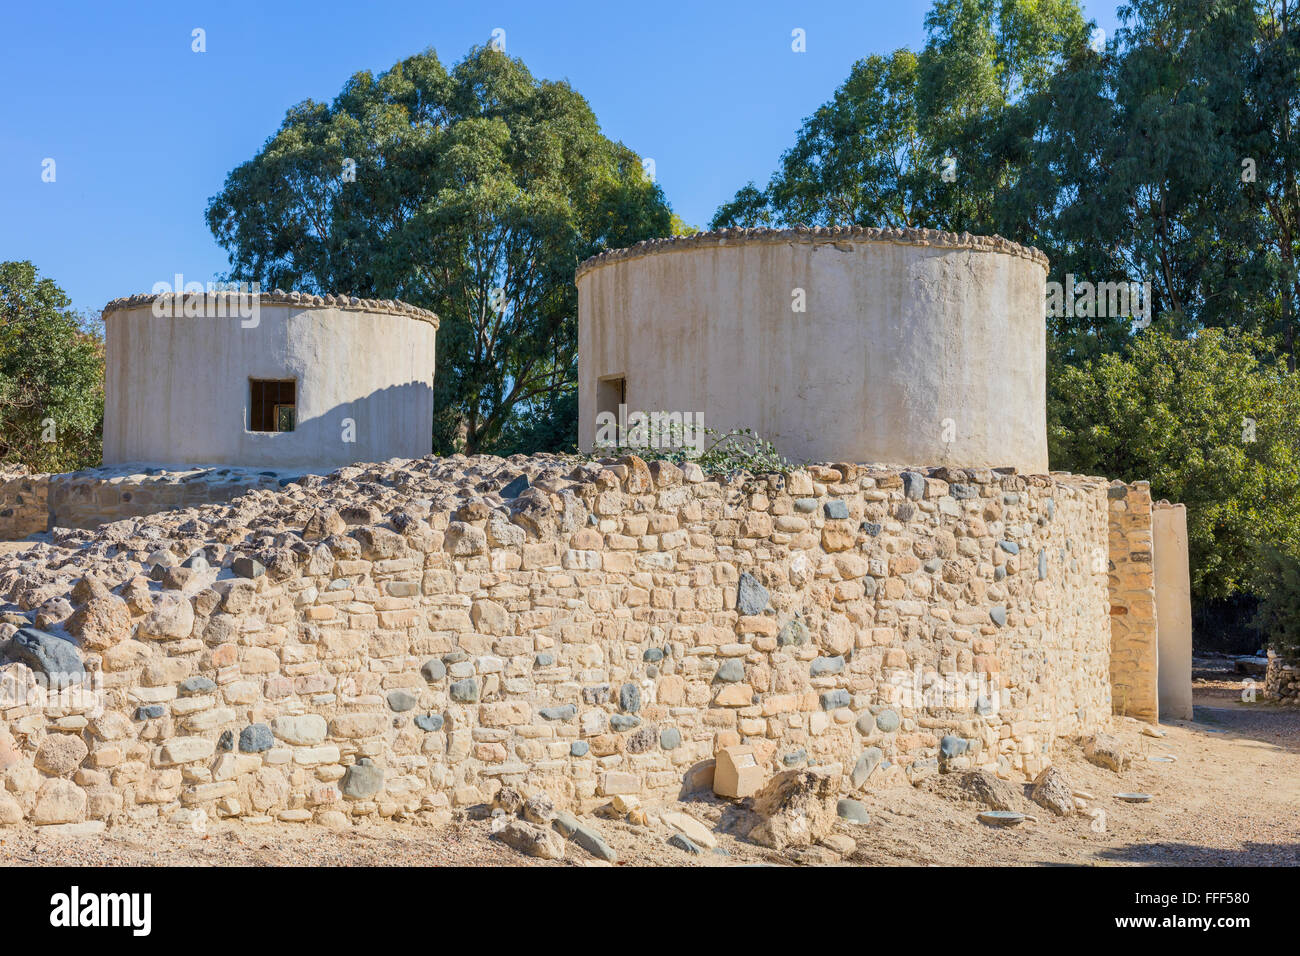 Reconstructed structures, Khirokitia archaeological site, Cyprus Stock Photo